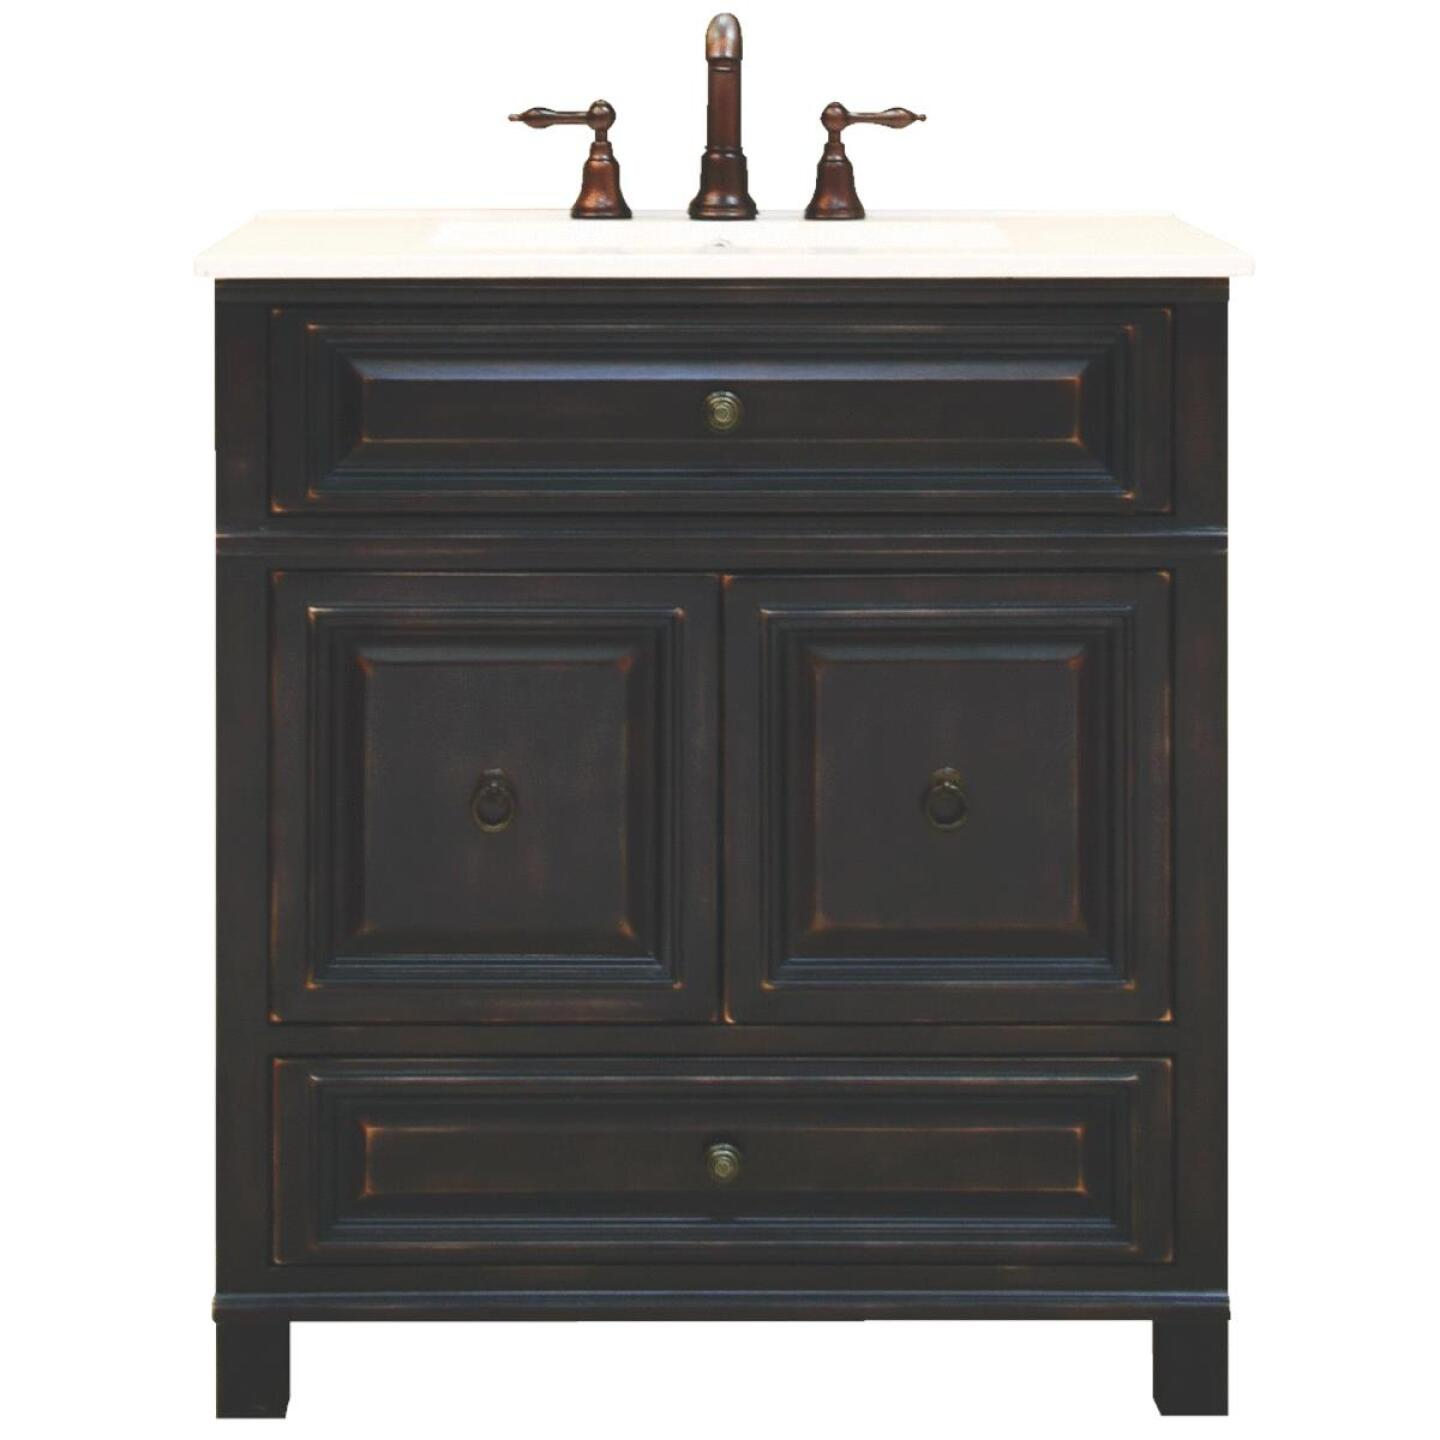 Sunny Wood Barton Hill Black Onyx 30 In. W x 34 In. H x 21 In. D Vanity Base, 2 Door/1 Drawer Image 171